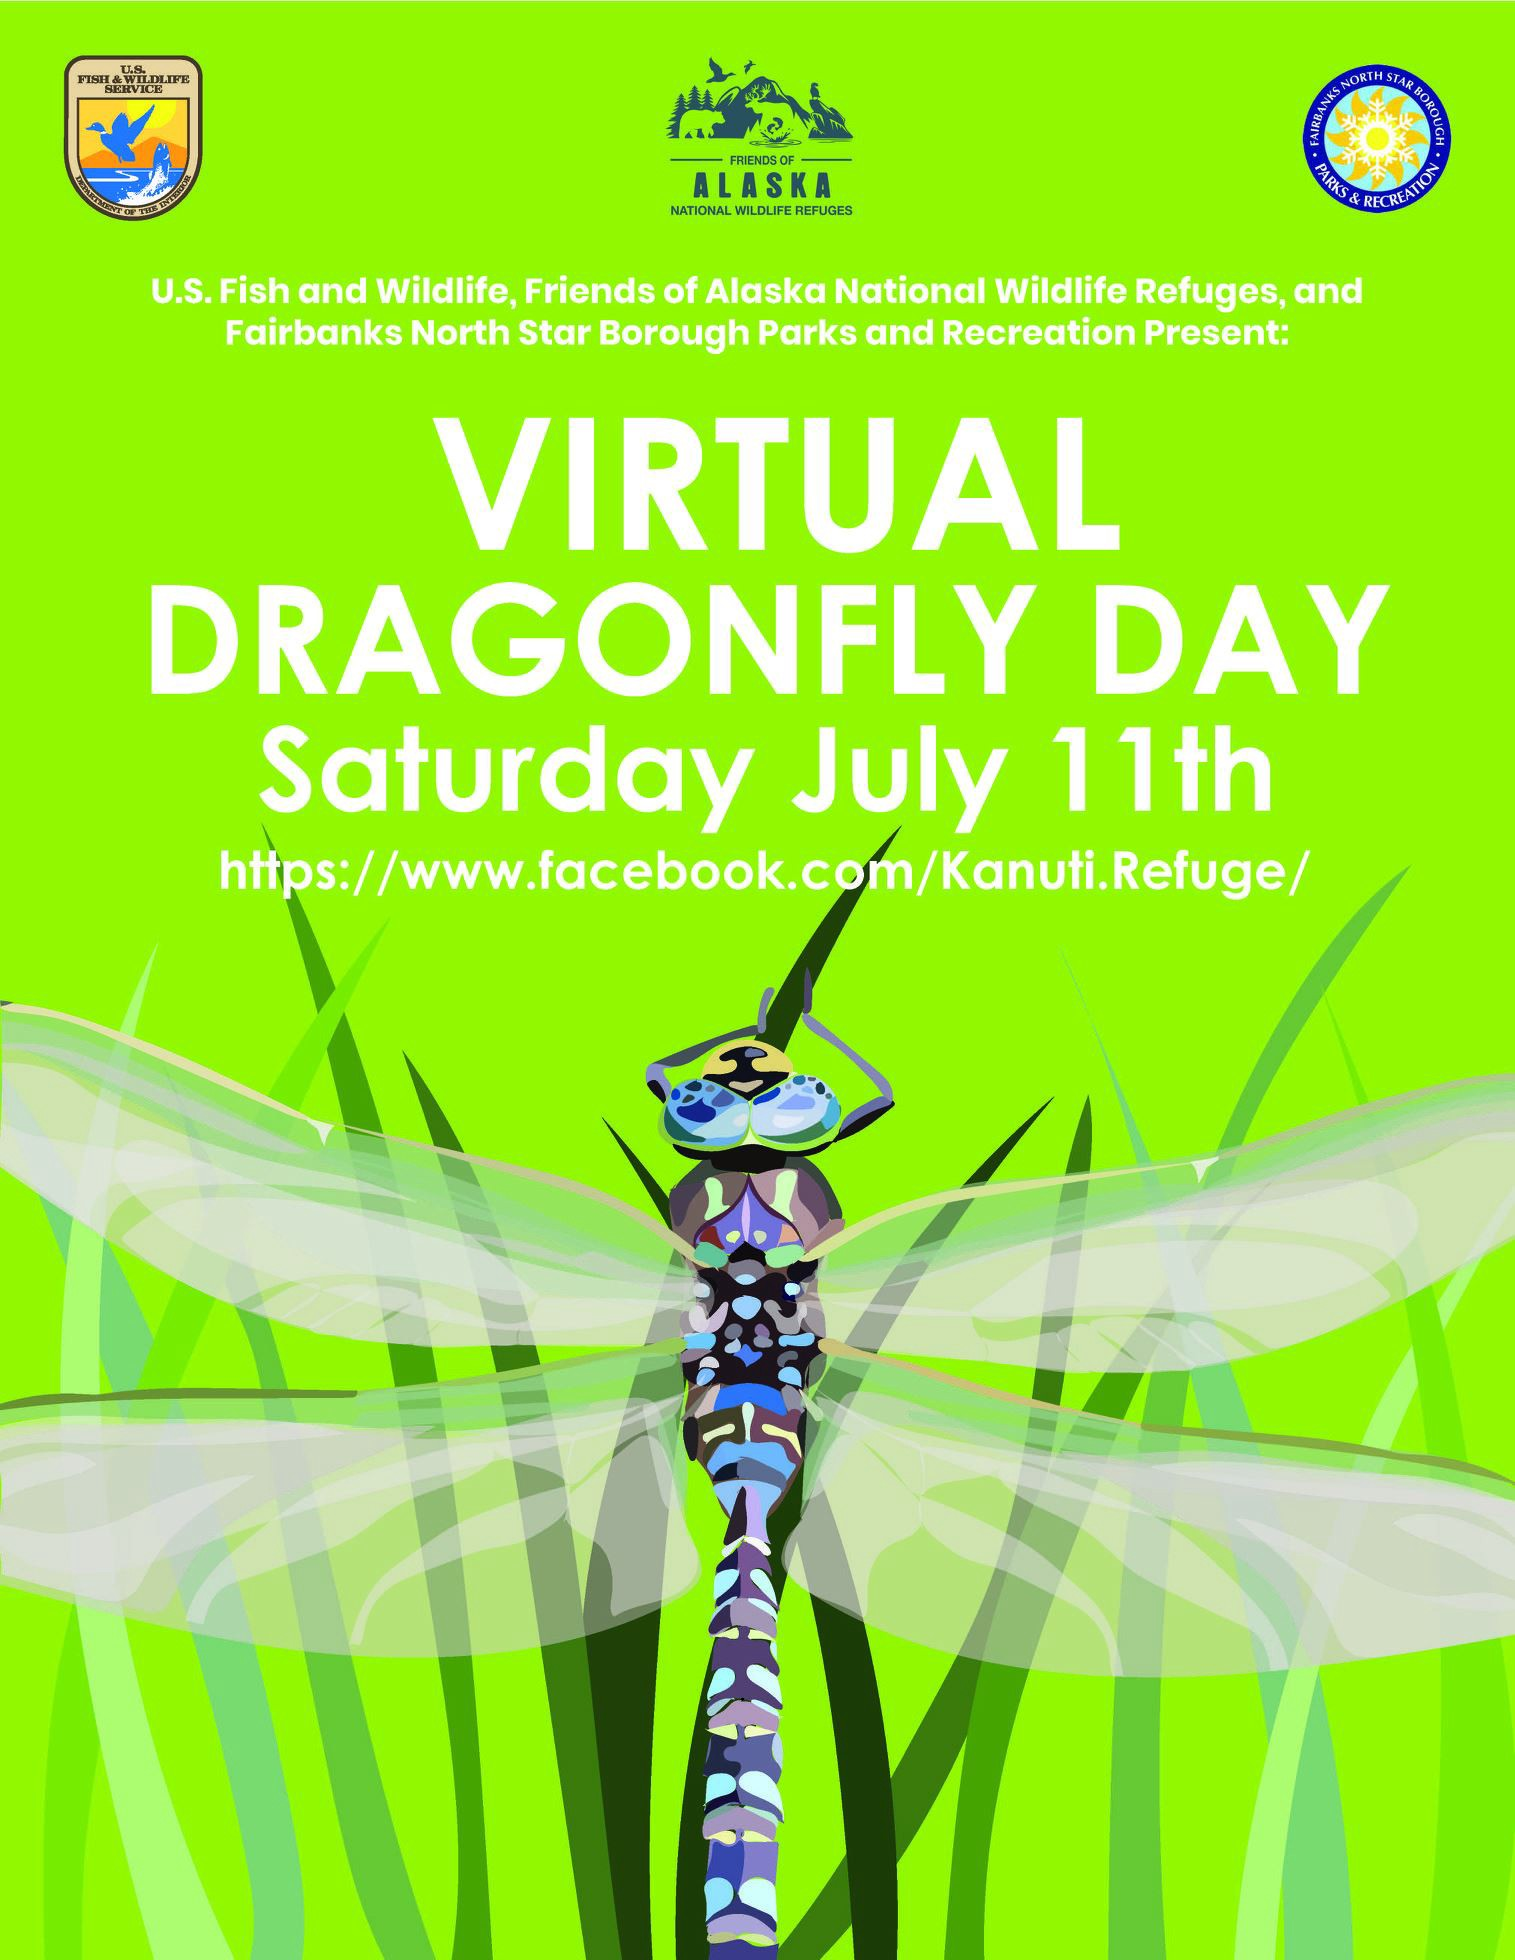 Poster of dragonfly on grass. Text: Virtual Dragonfly Day Saturday July 11th.